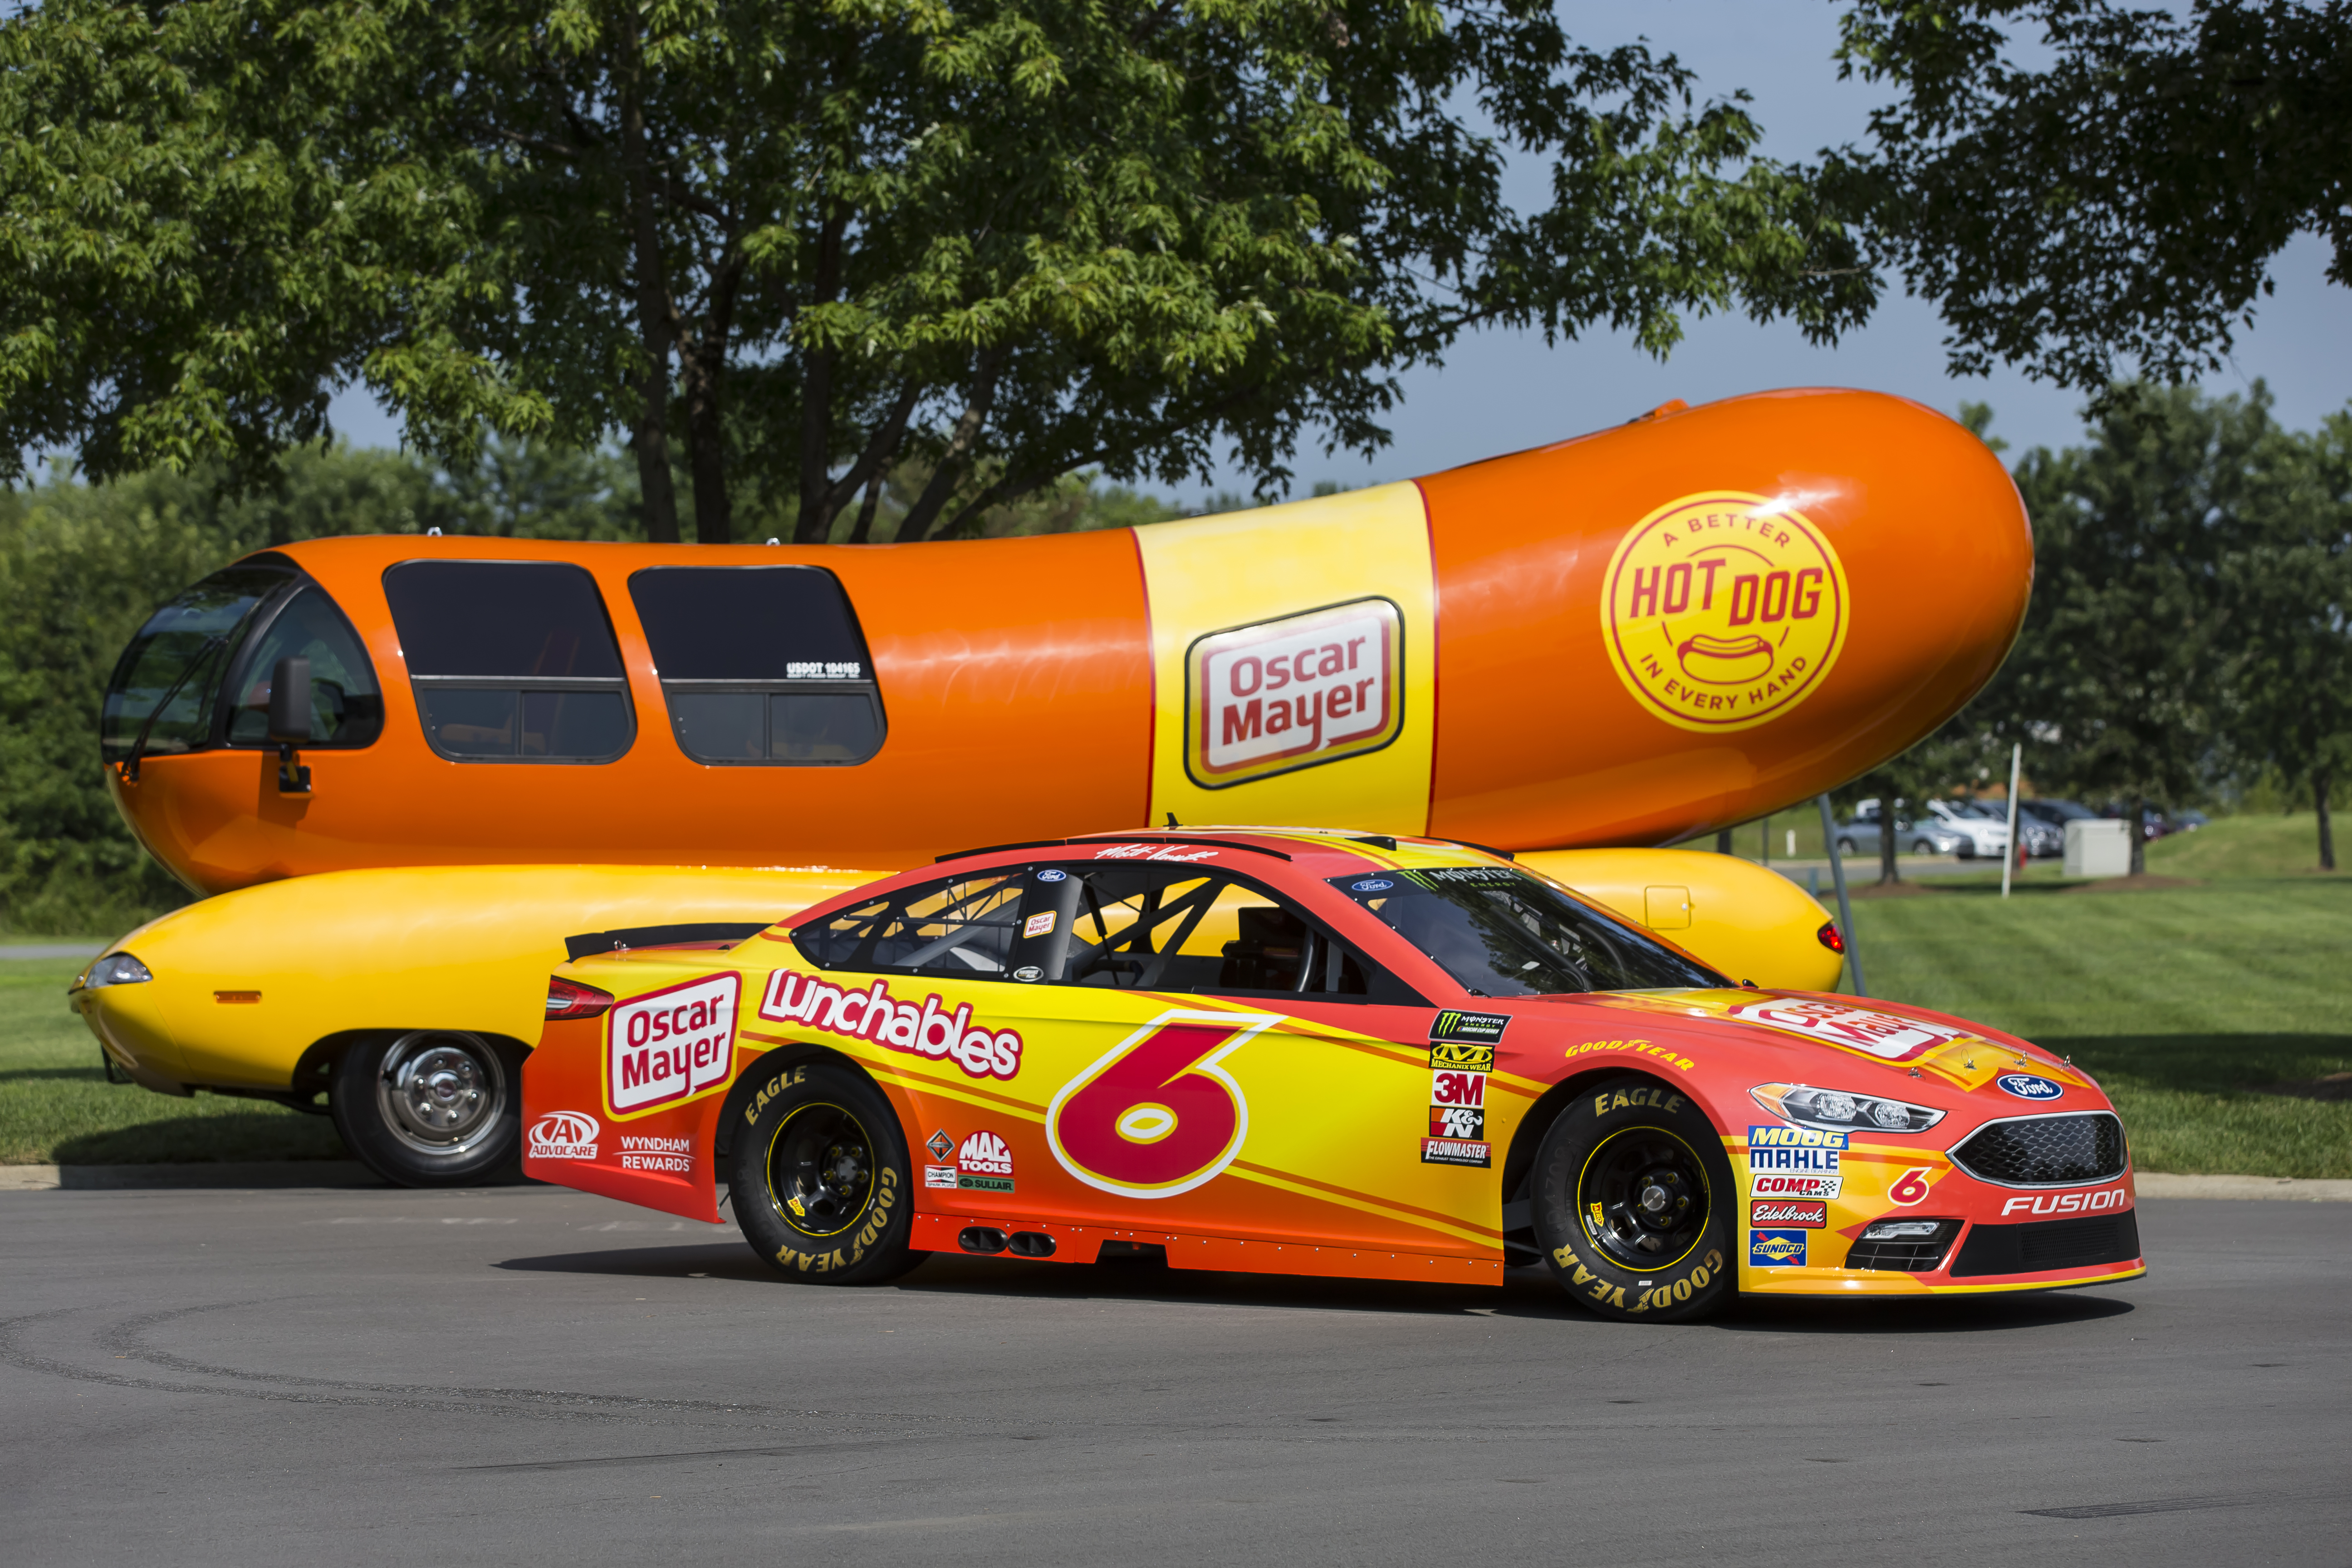 Wiring Up A Race Car Archive Of Automotive Diagram Ron Francis Oscar Mayer Teams With Roush Fenway Racing As Primary Partner Rh Businesswire Com